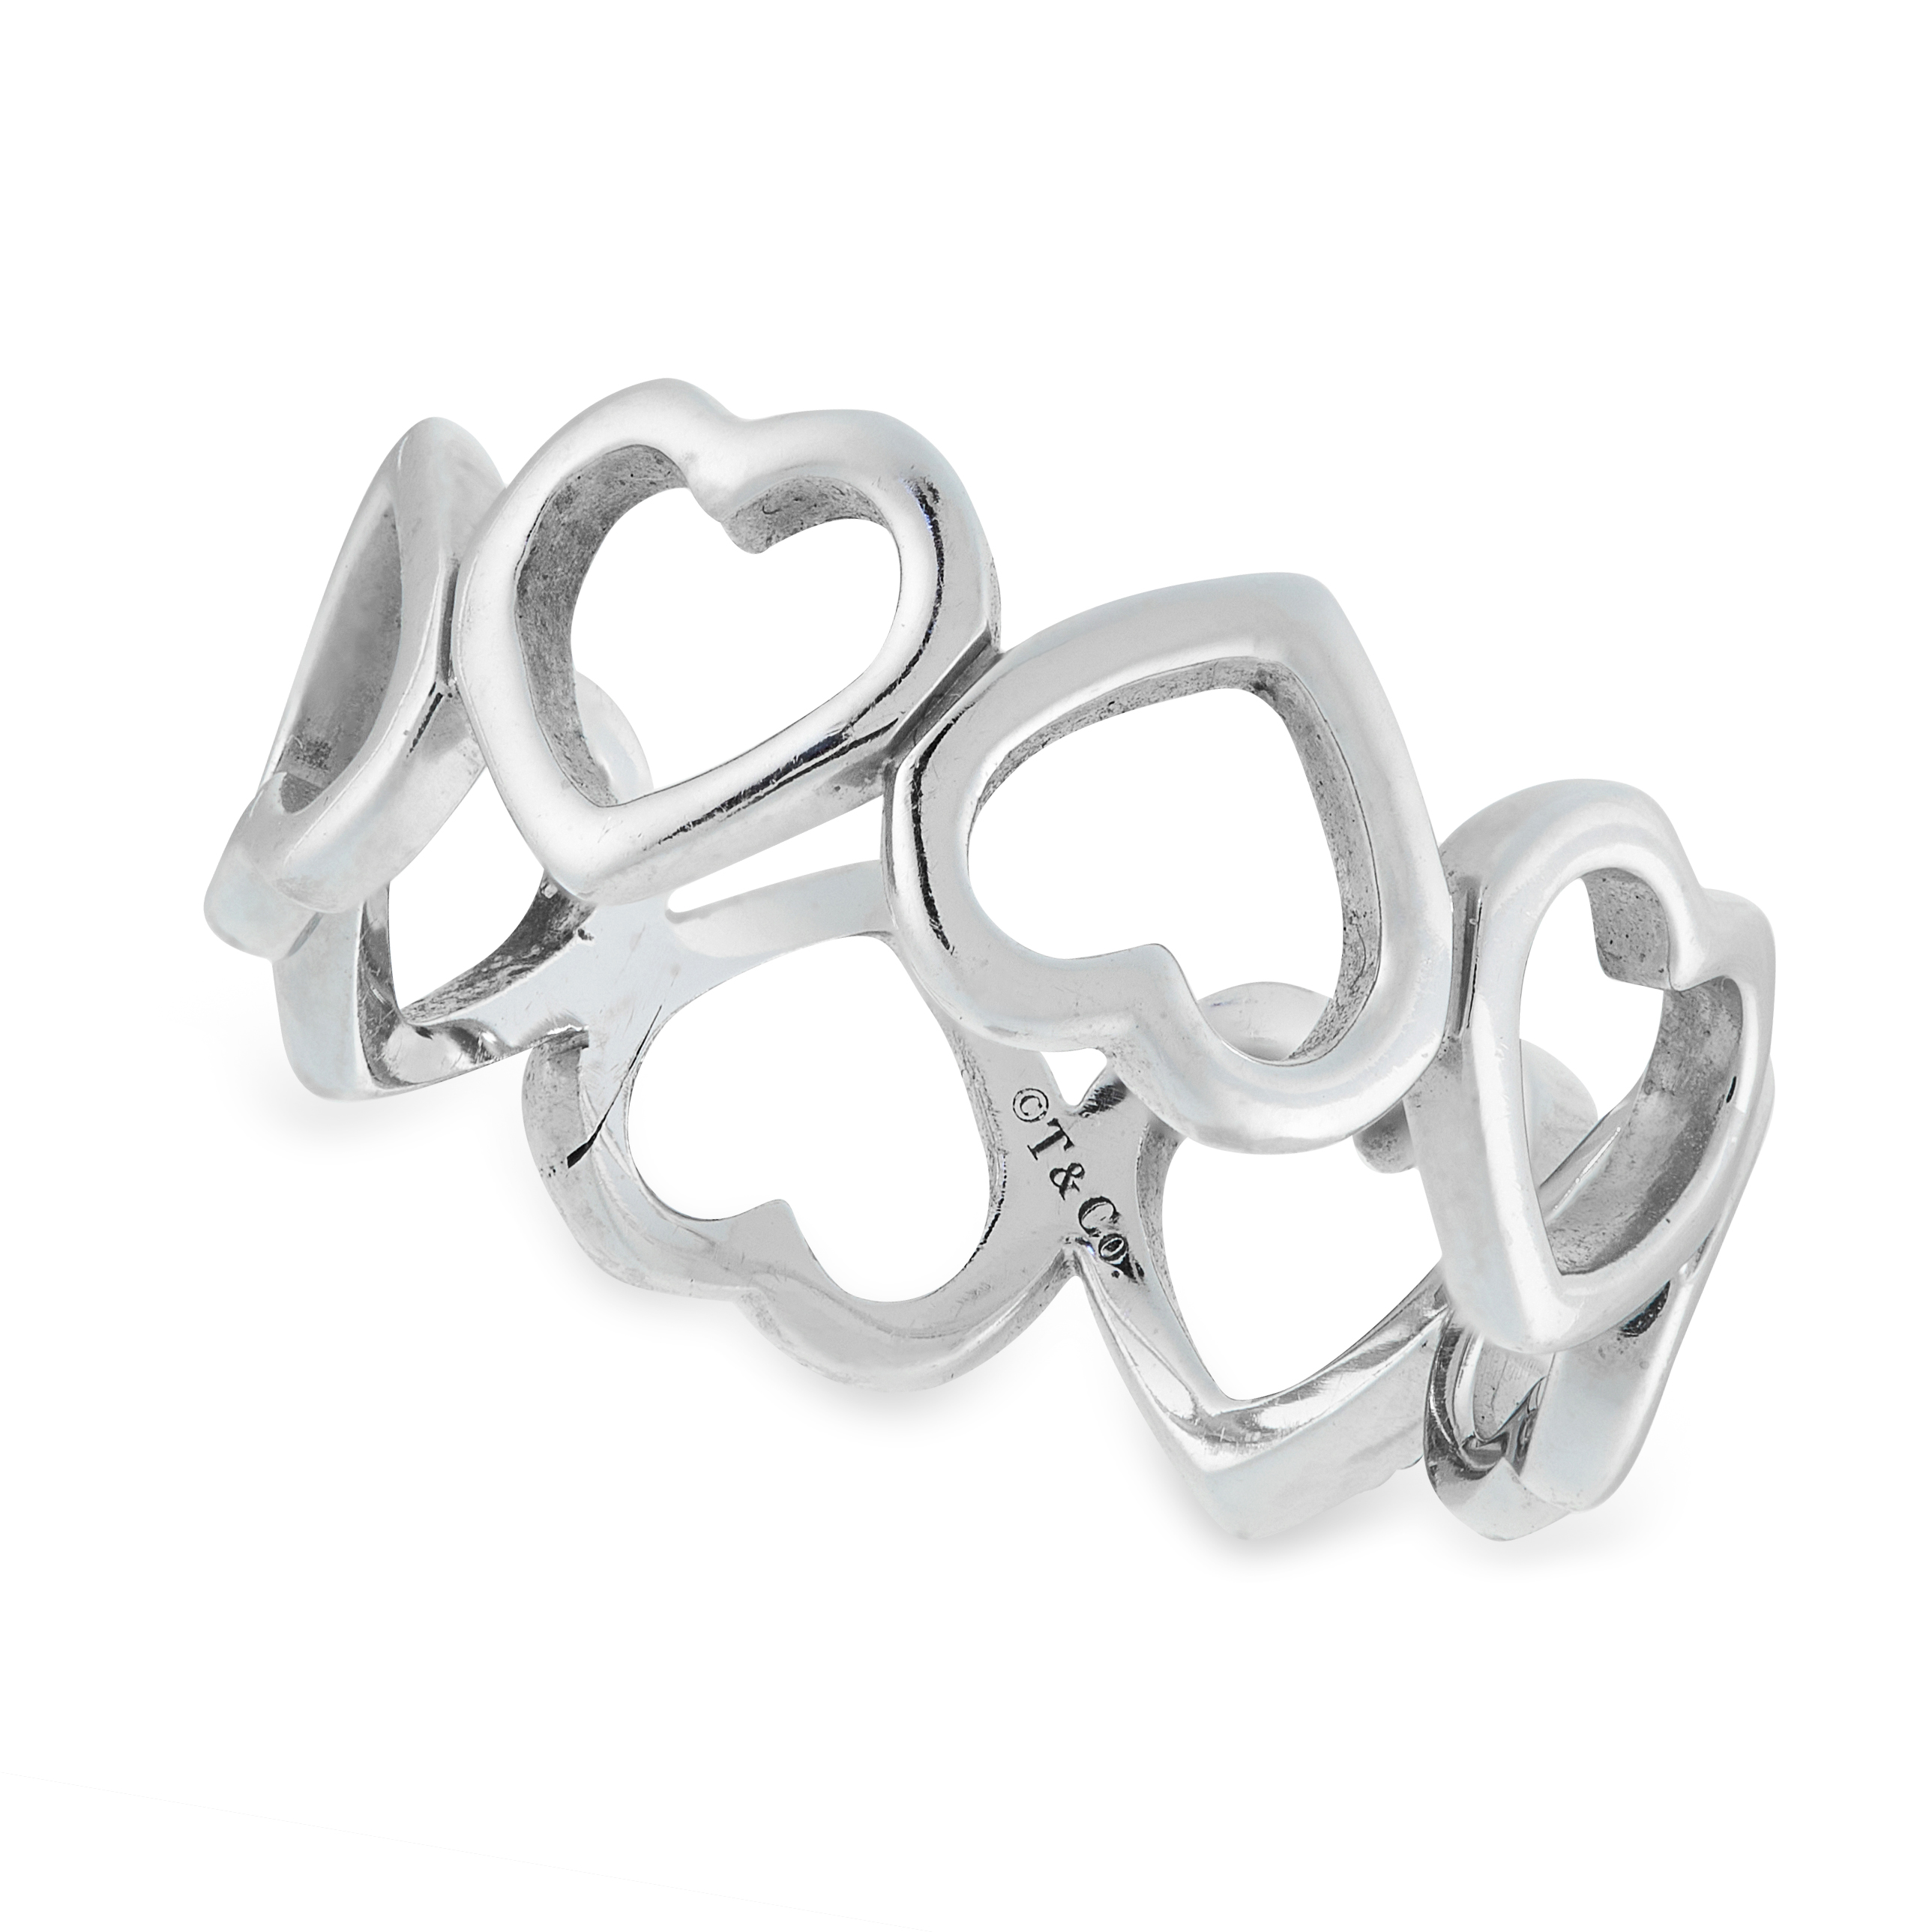 A DIAMOND HEART RING, TIFFANY & CO in 18ct white gold, the band formed of a row of eight hearts, one - Image 2 of 2